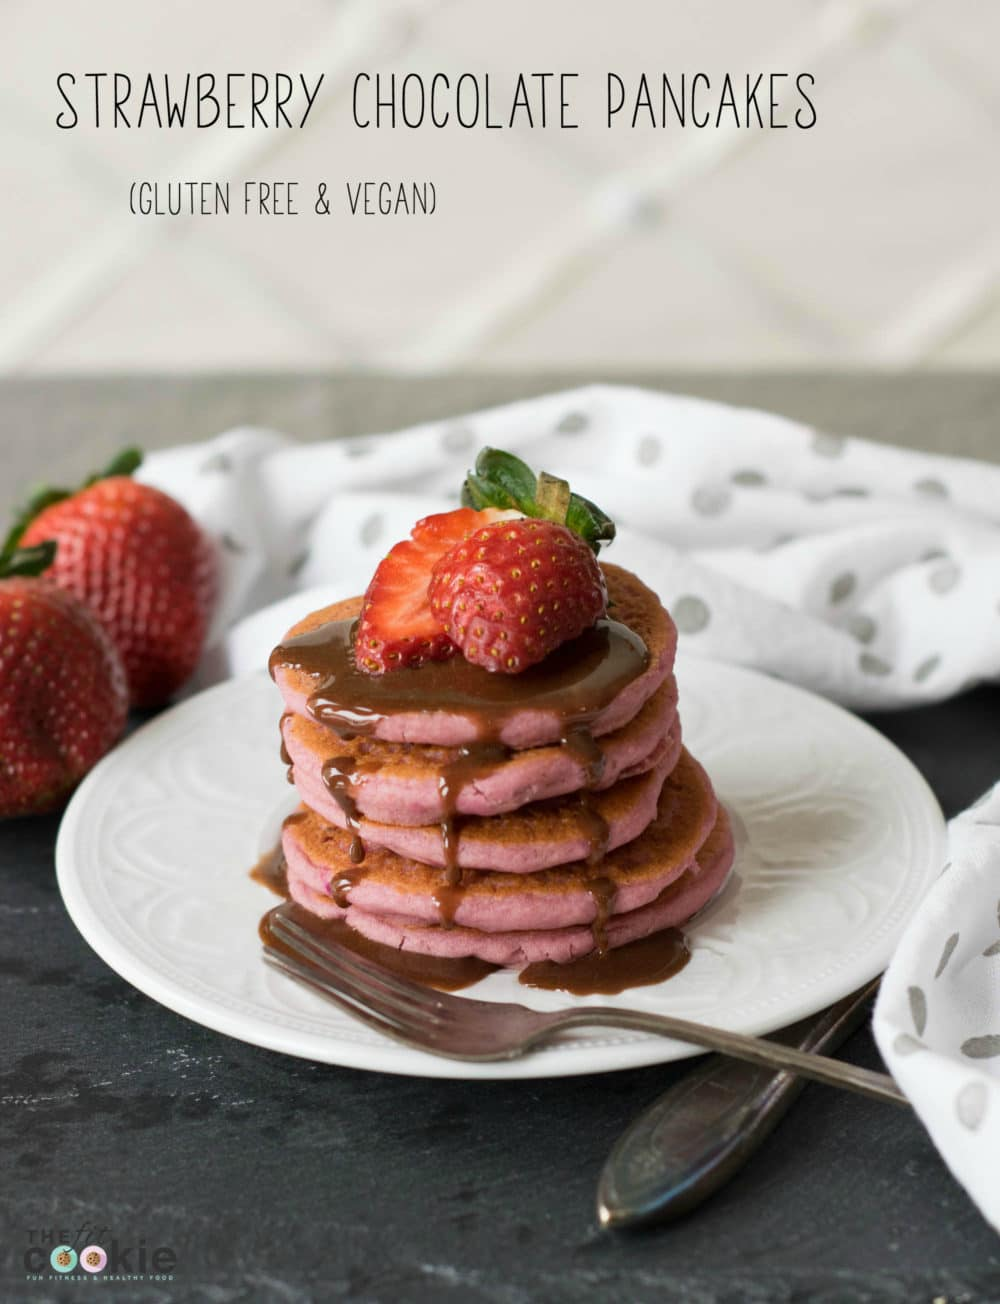 Gluten Free Strawberry Pancakes Vegan The Fit Cookie